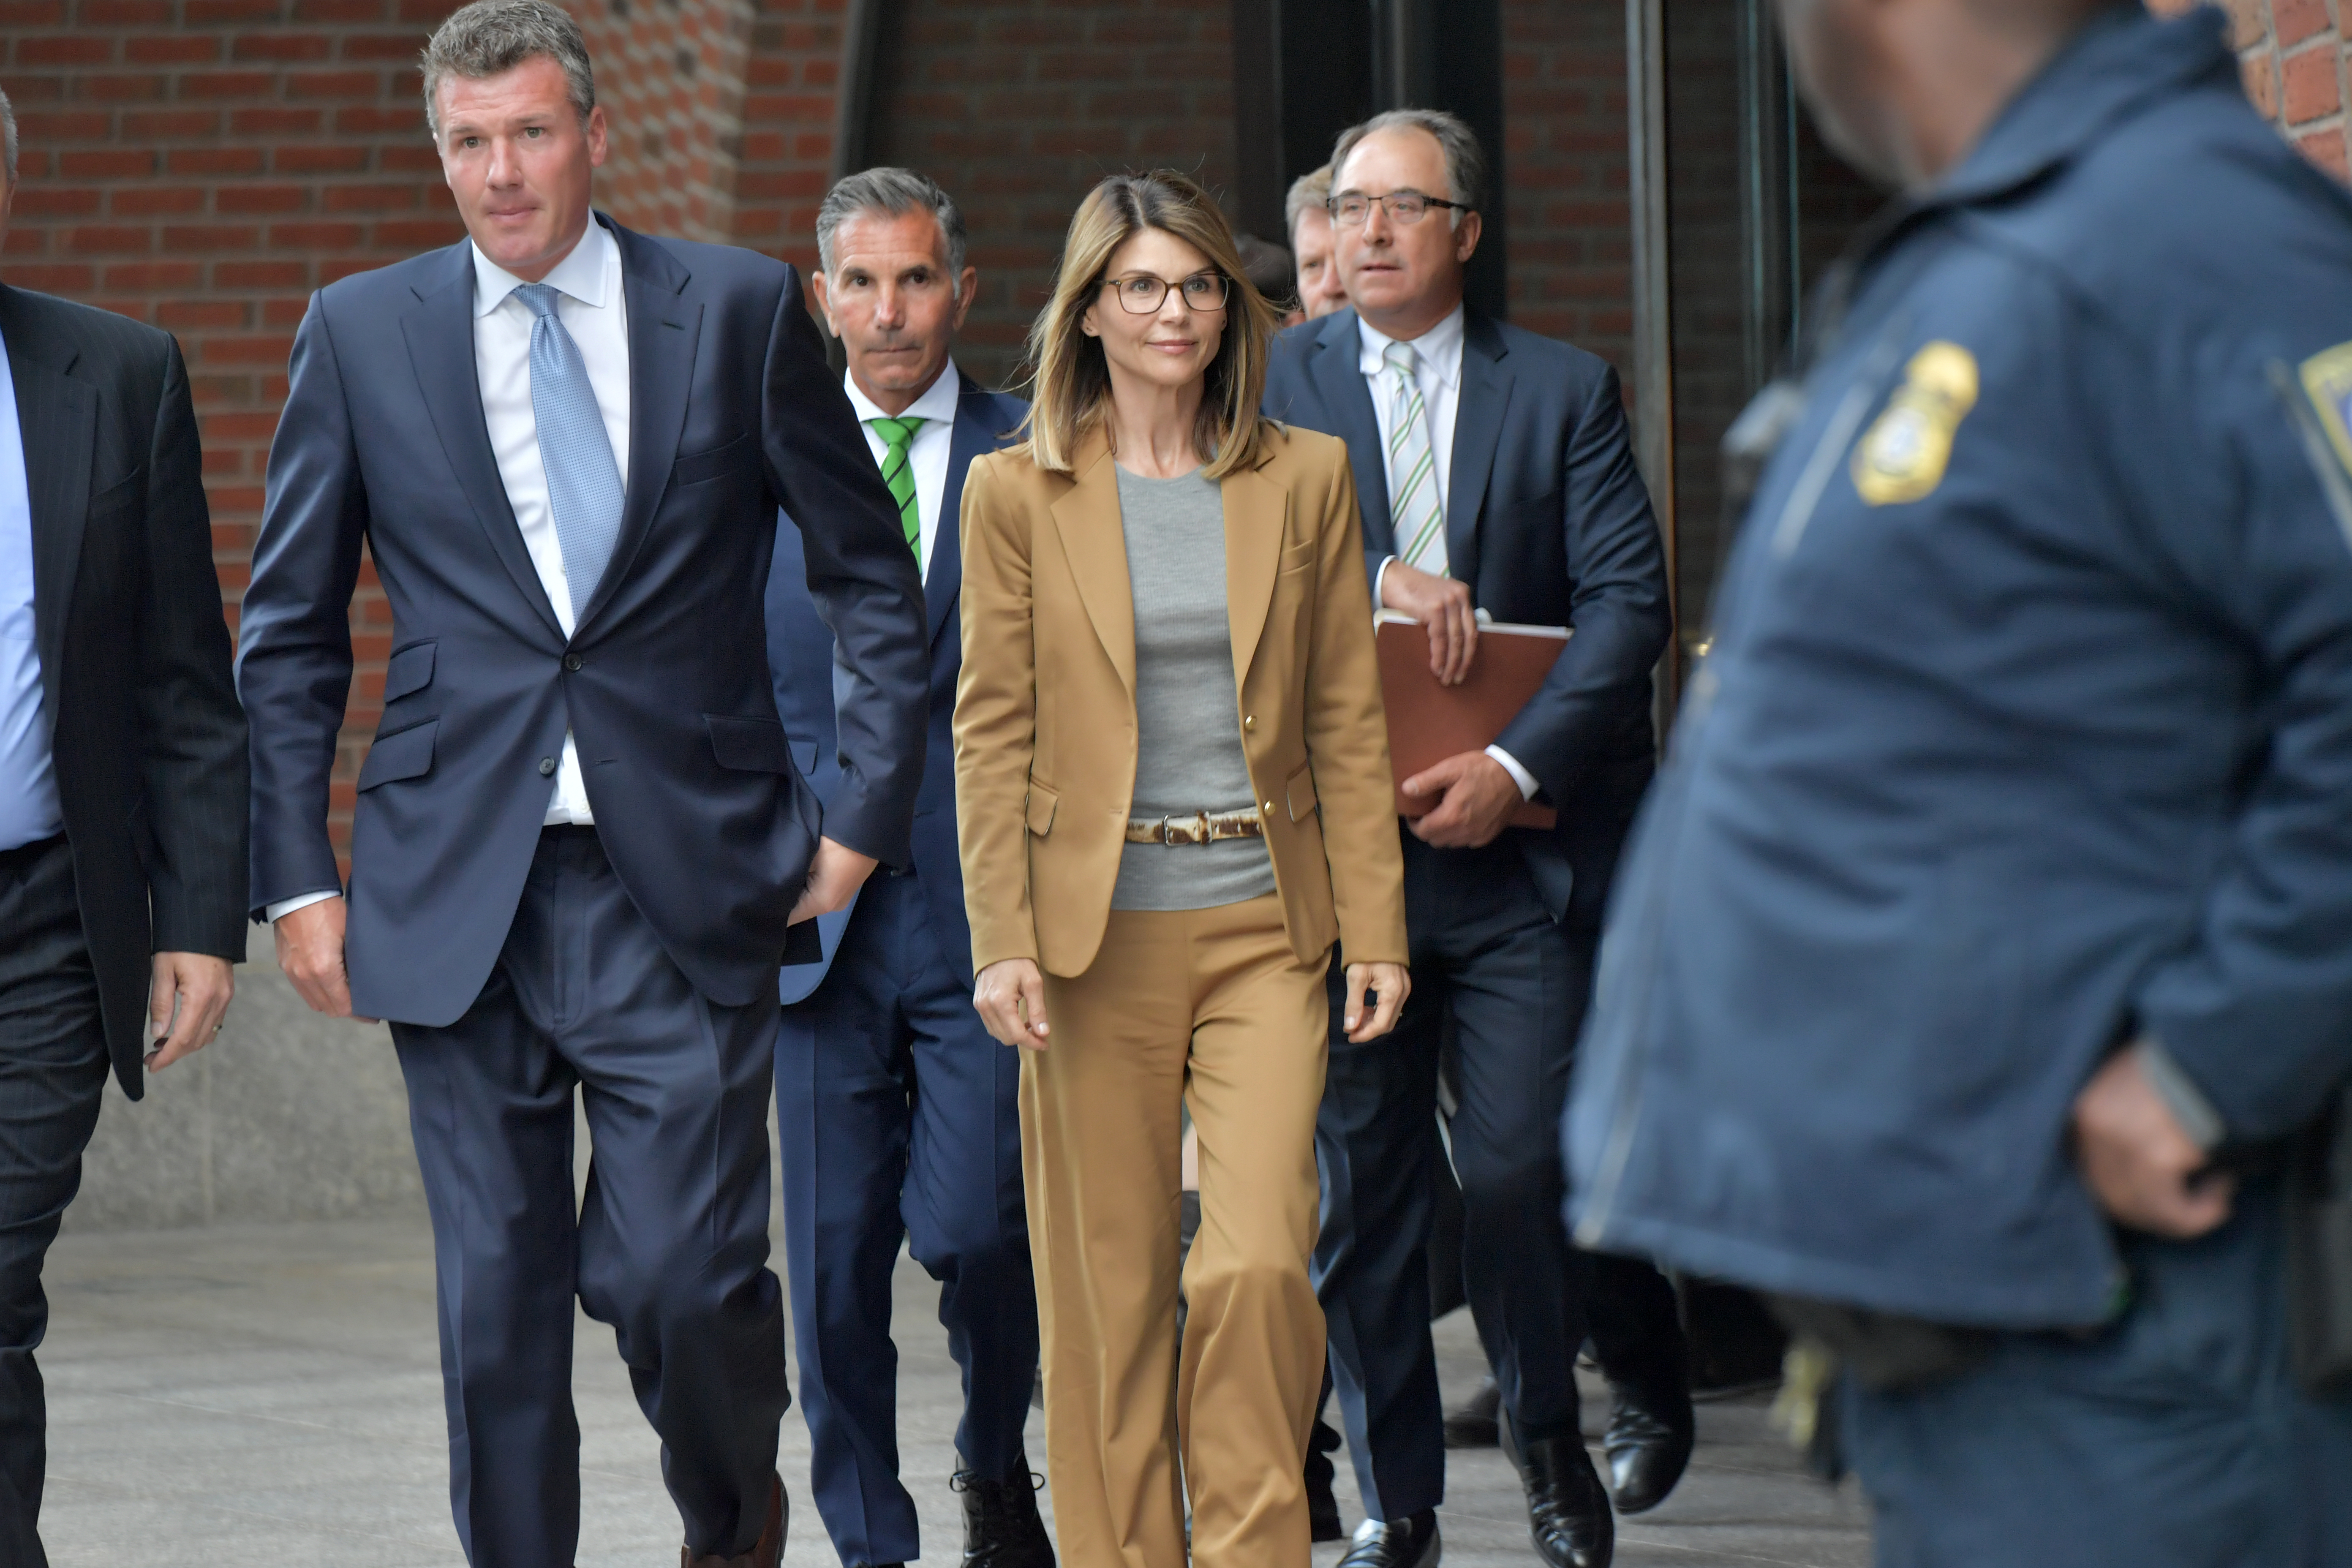 Lori Loughlin and her lawyers walk away from a courthouse.